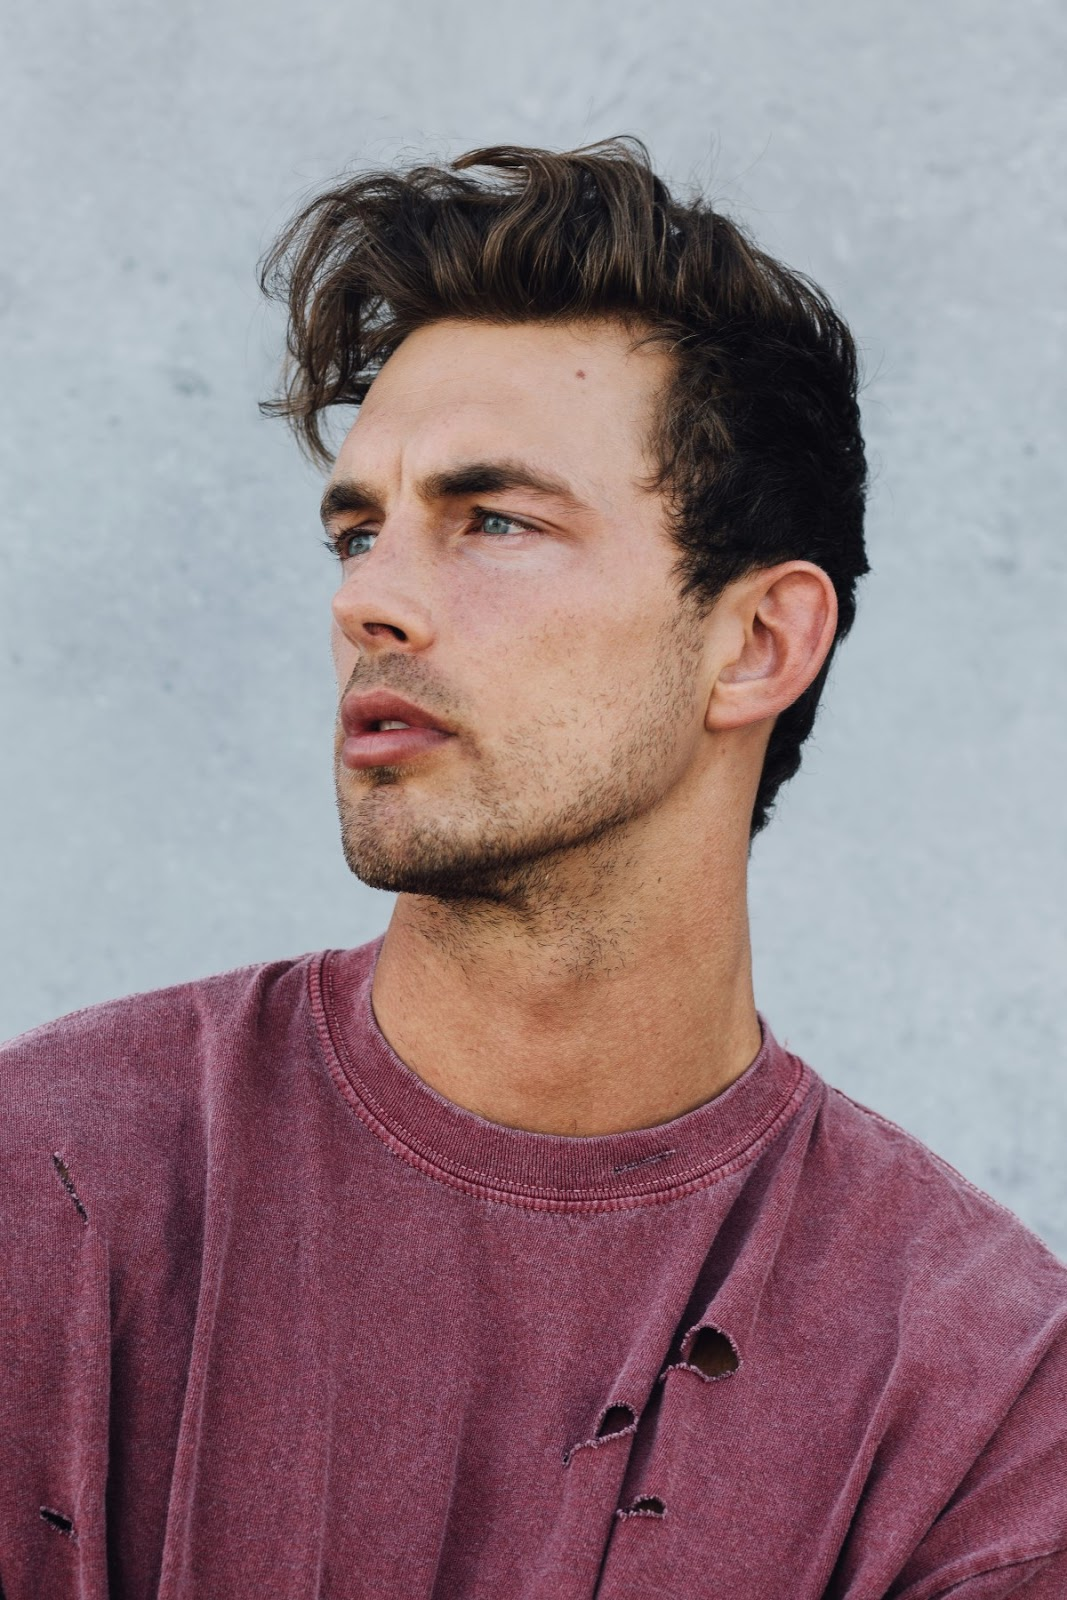 christian-hogue-by-taylor-miller15